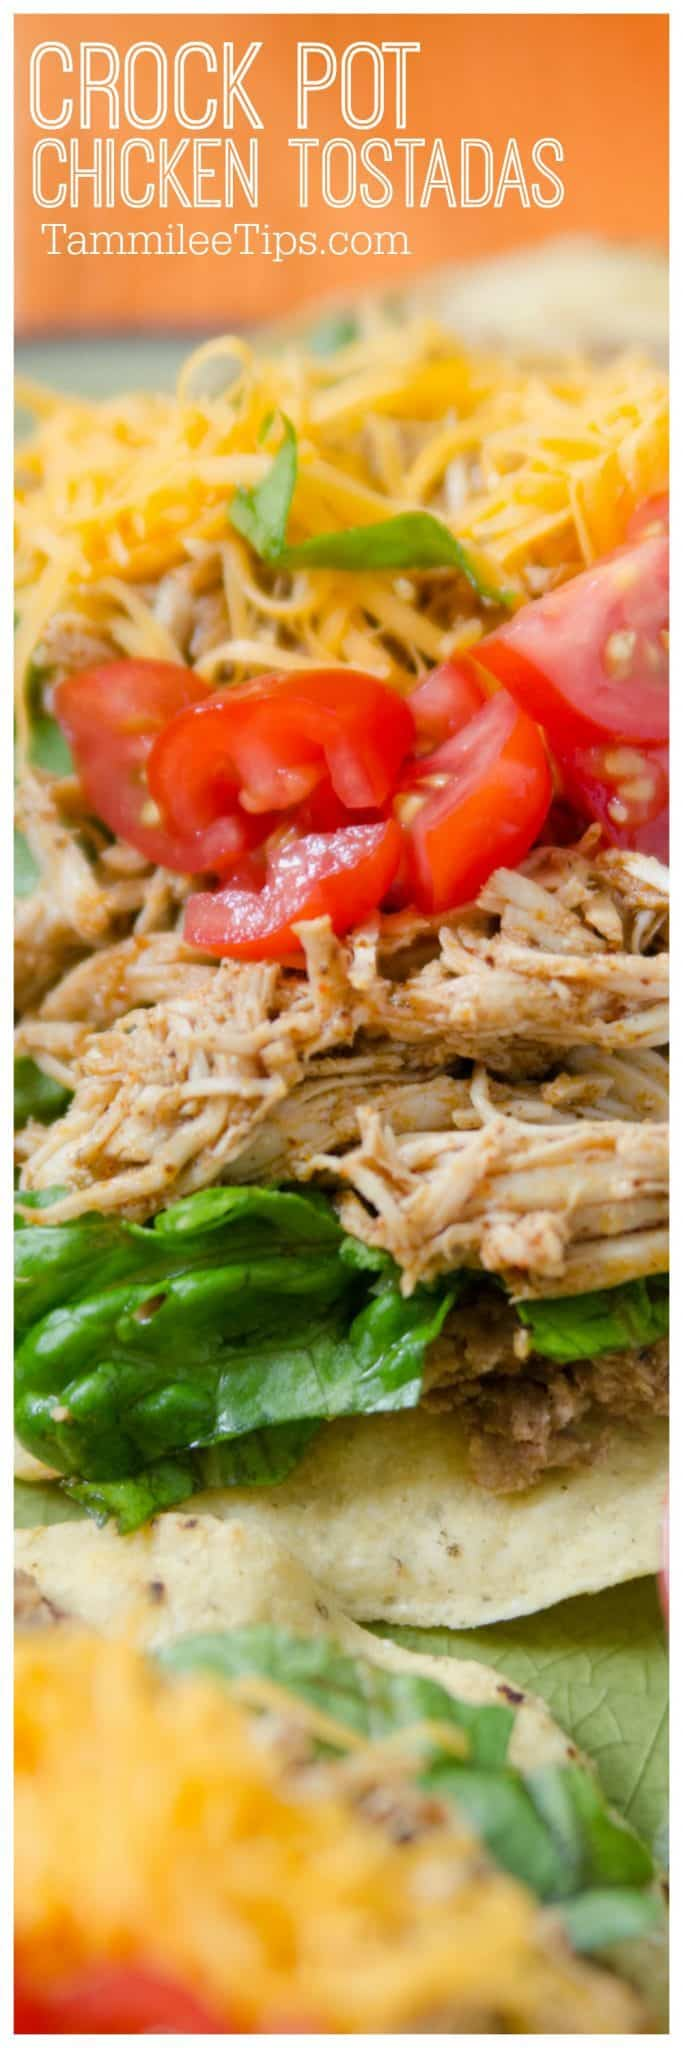 Easy Crock Pot Mexican Chicken Tostadas Recipe! The slow cooker crock pot does all the work and you get a great family dinner. #slowcooker #crockpot #chicken